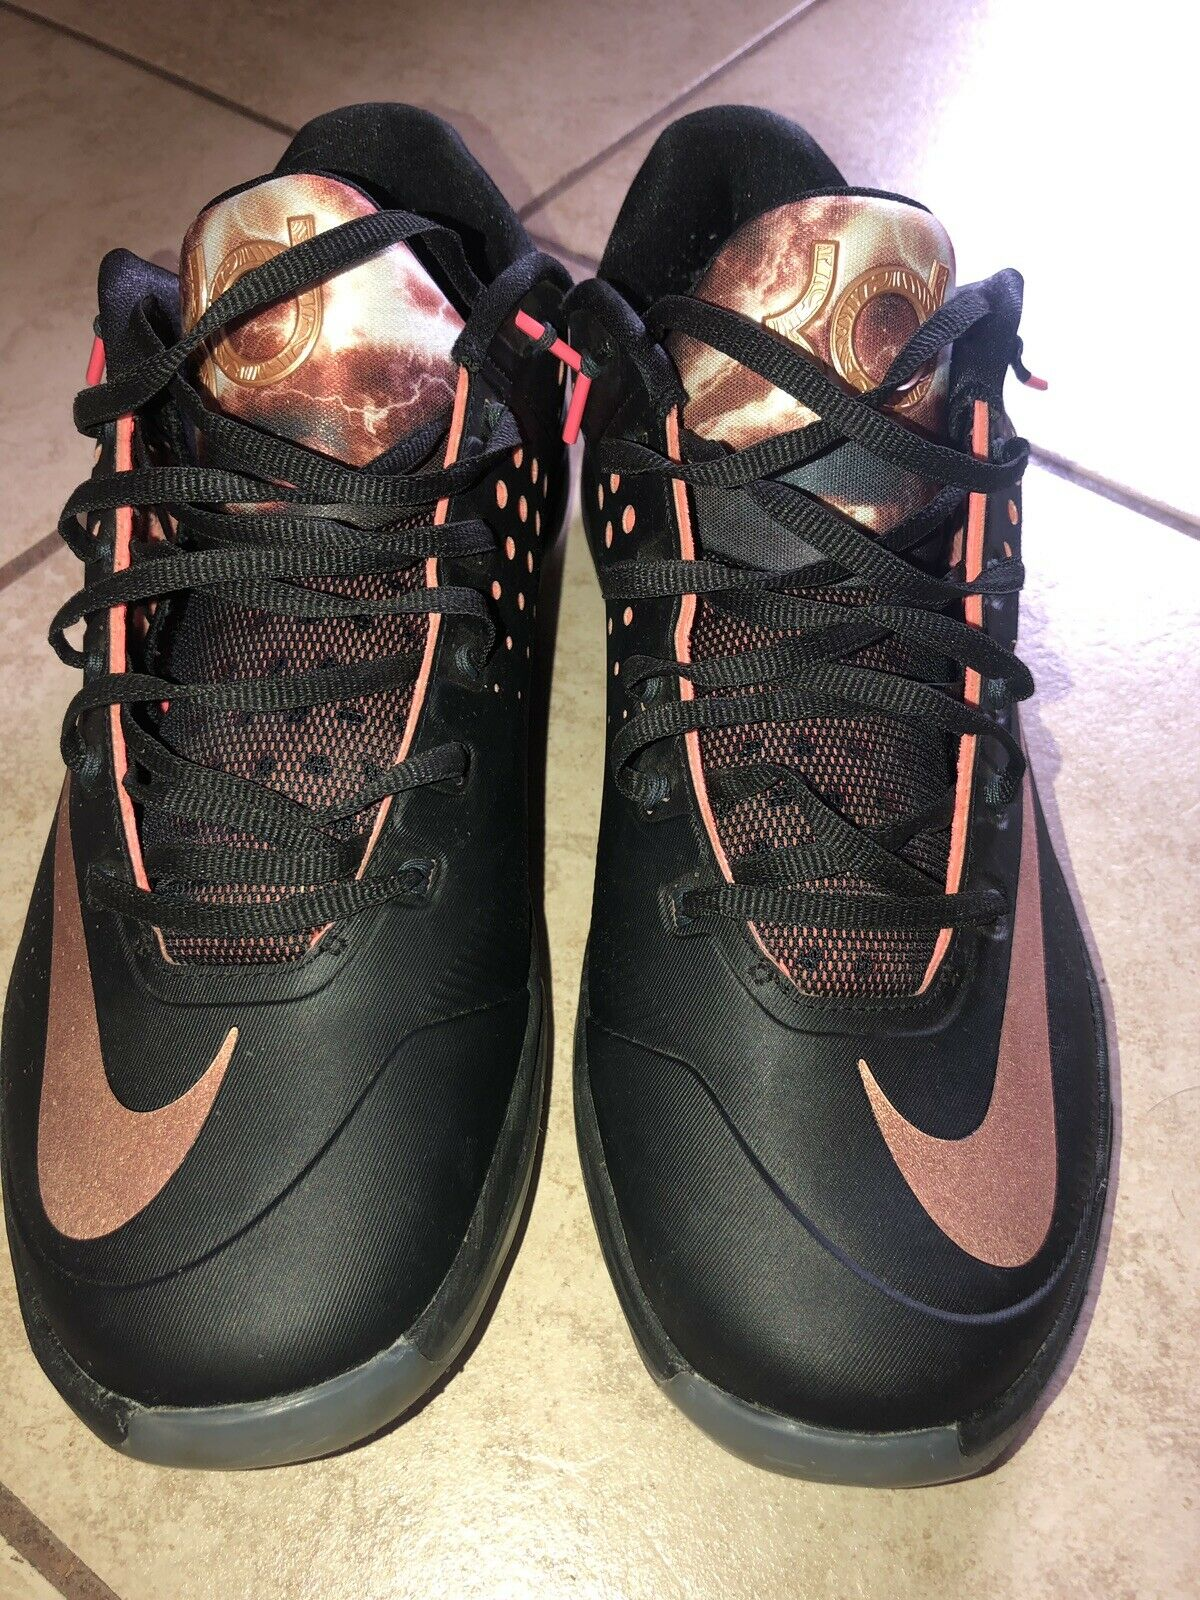 KD 7 pink gold Size 12